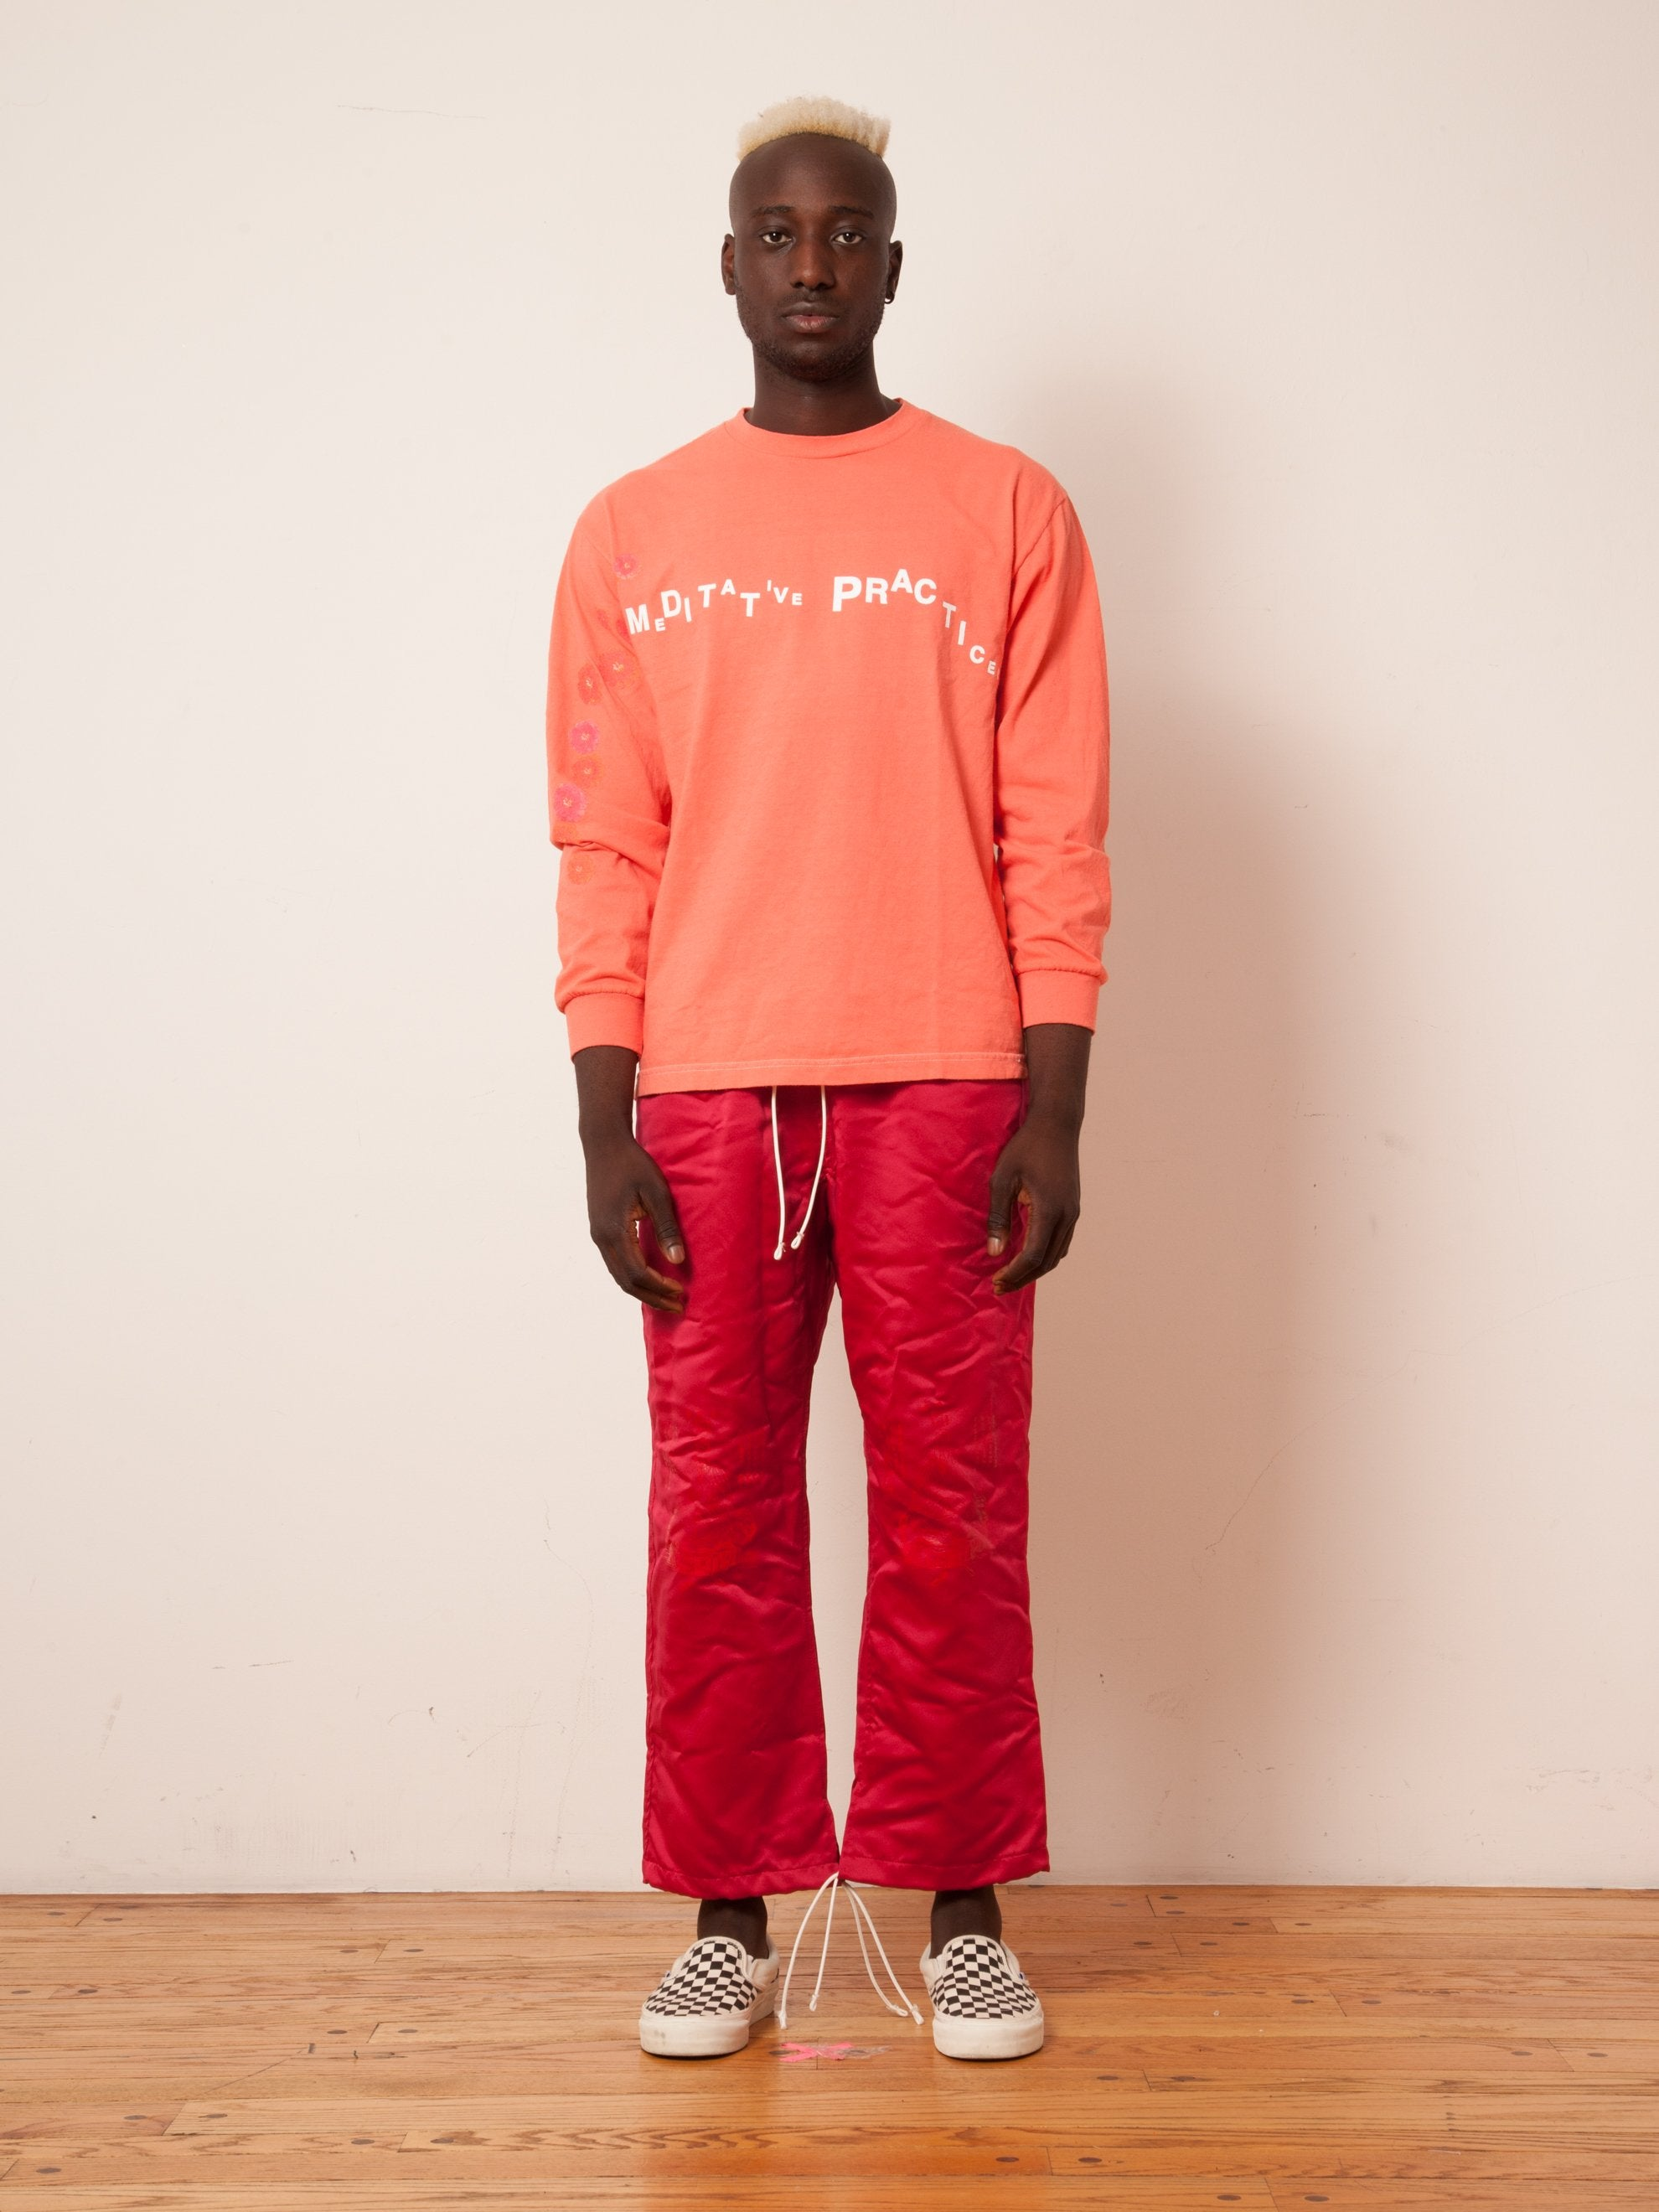 Meditation Practices Pant